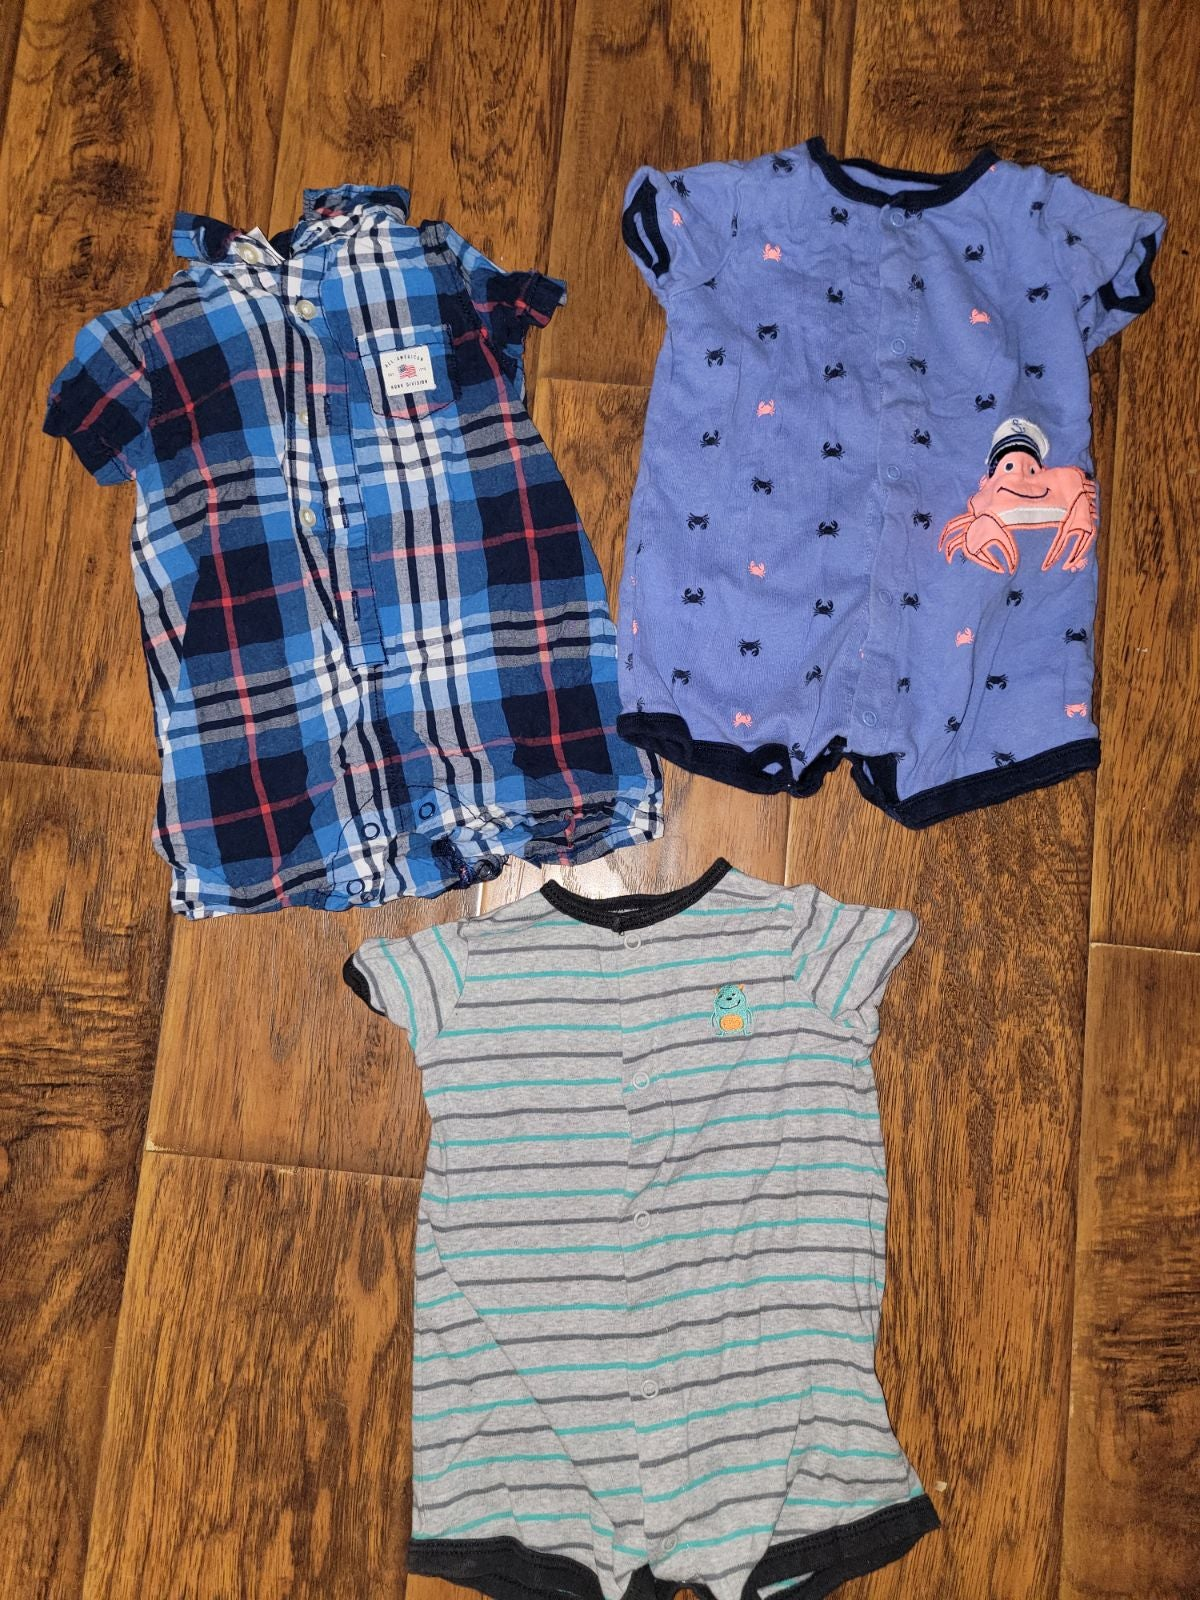 3 baby boy rompers